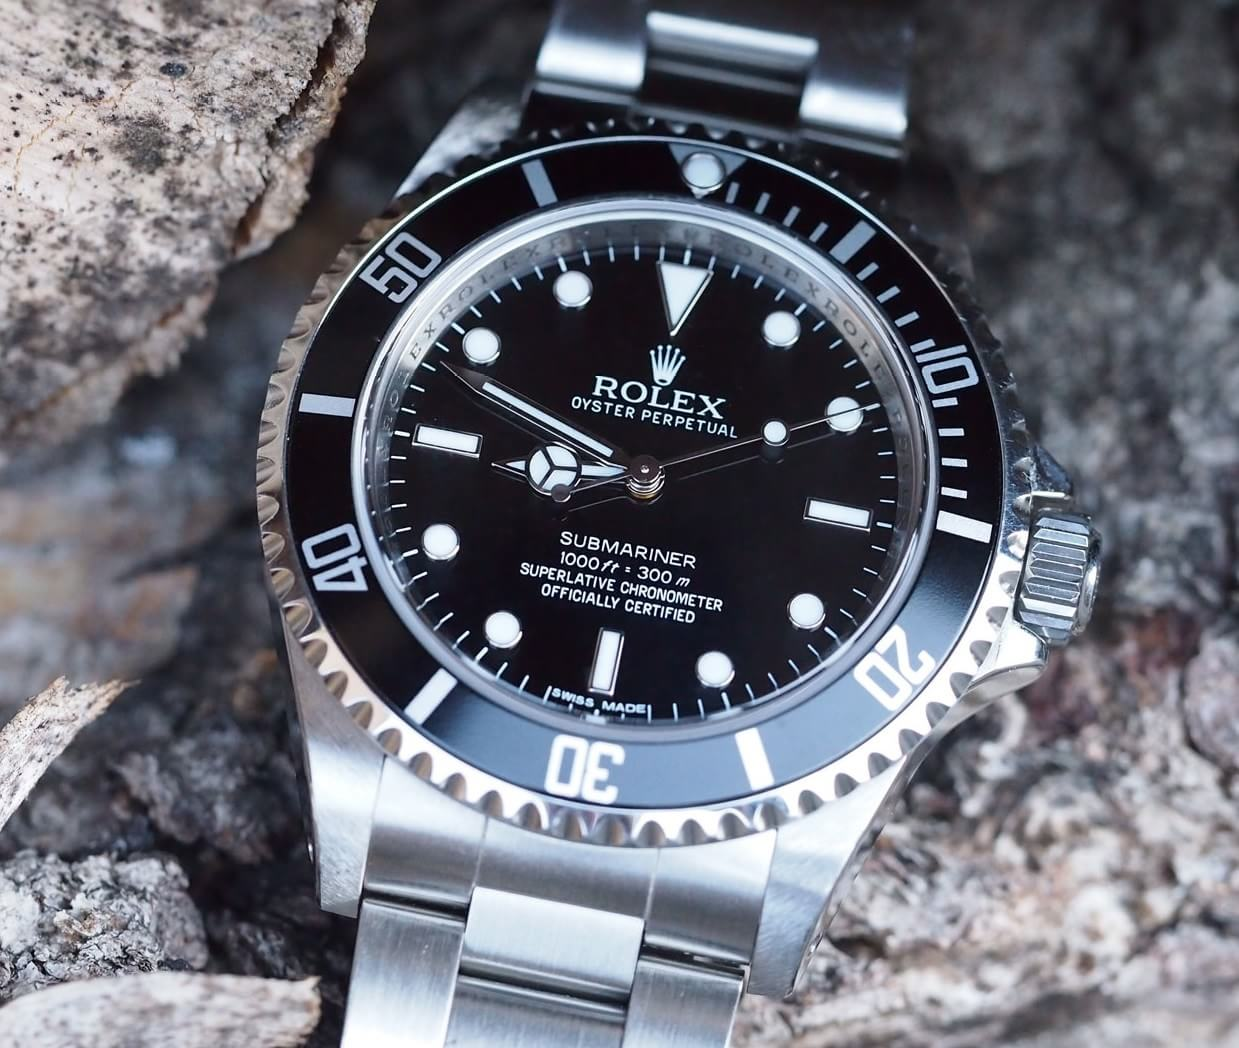 Rolex-Submariner-Watches